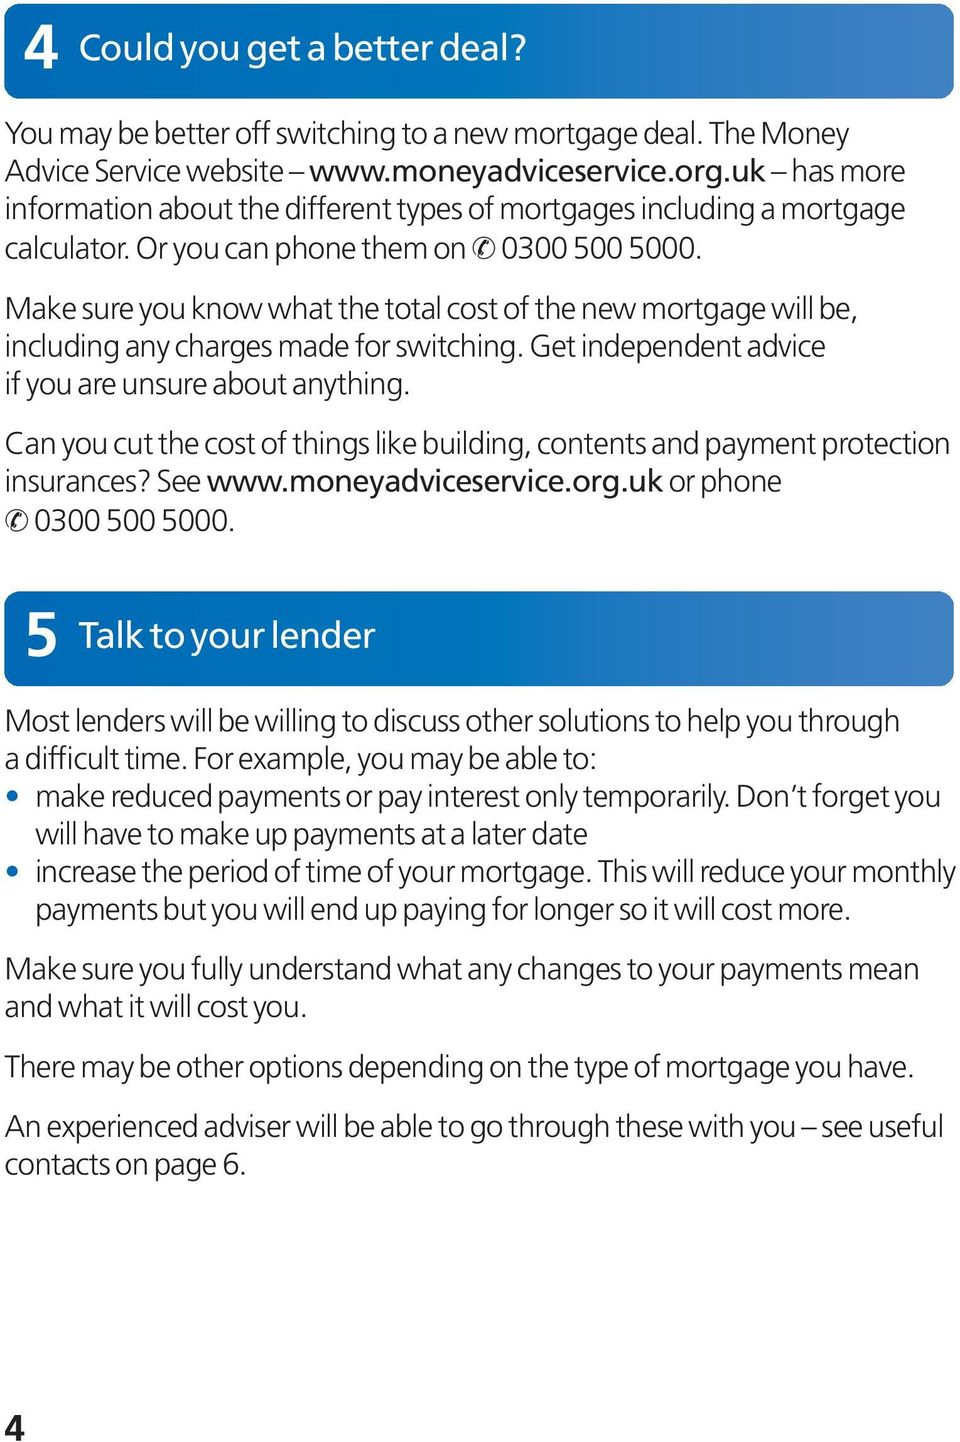 Make sure you know what the total cost of the new mortgage will be, including any charges made for switching. Get independent advice if you are unsure about anything.